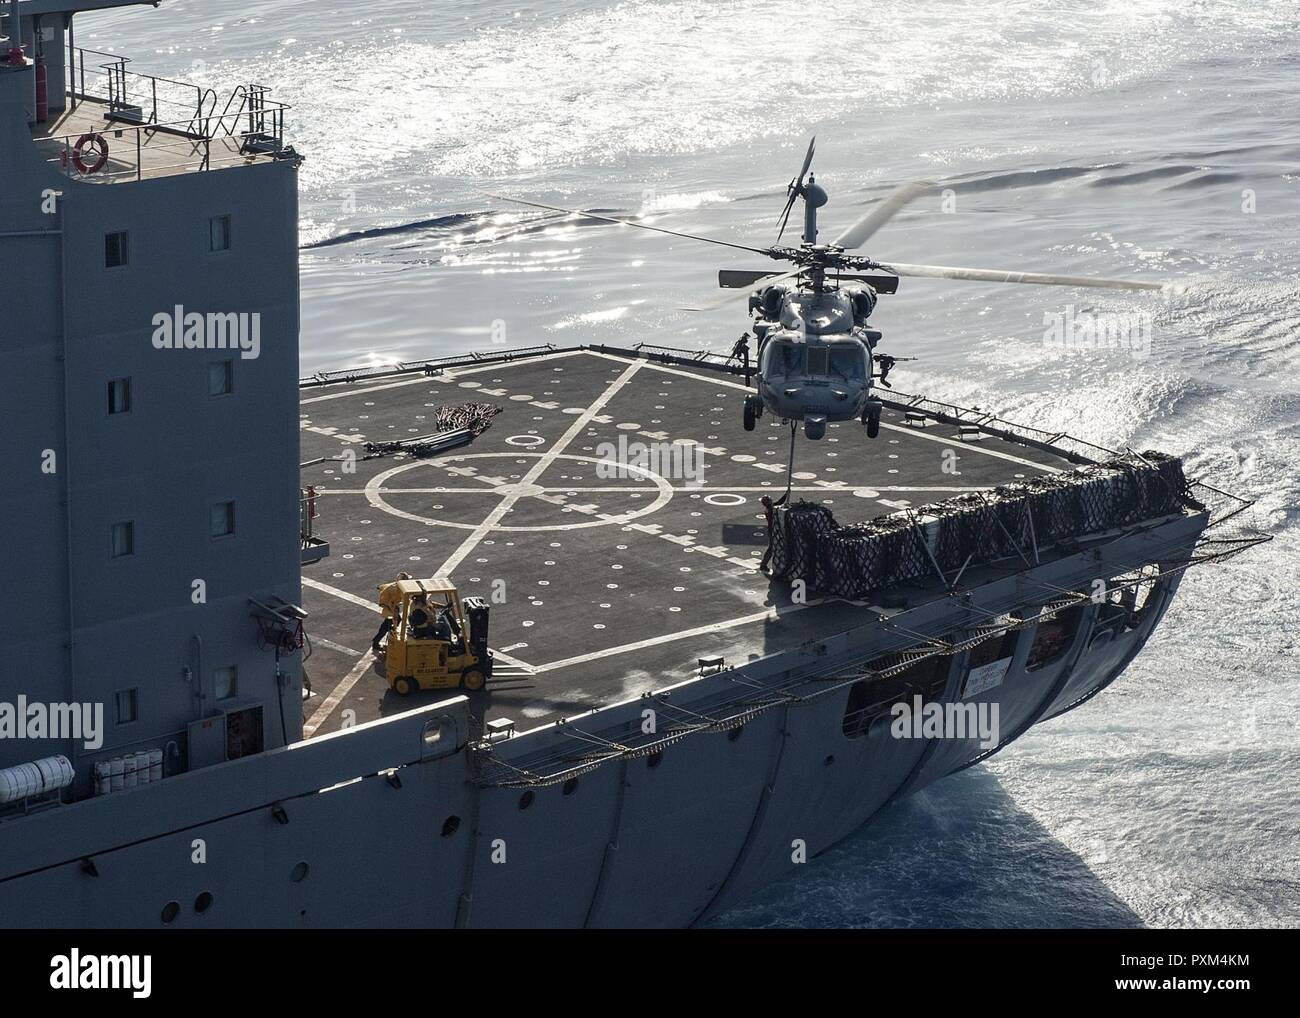 Usns Big Horn T Ao 198 Stock Photos & Usns Big Horn T Ao 198